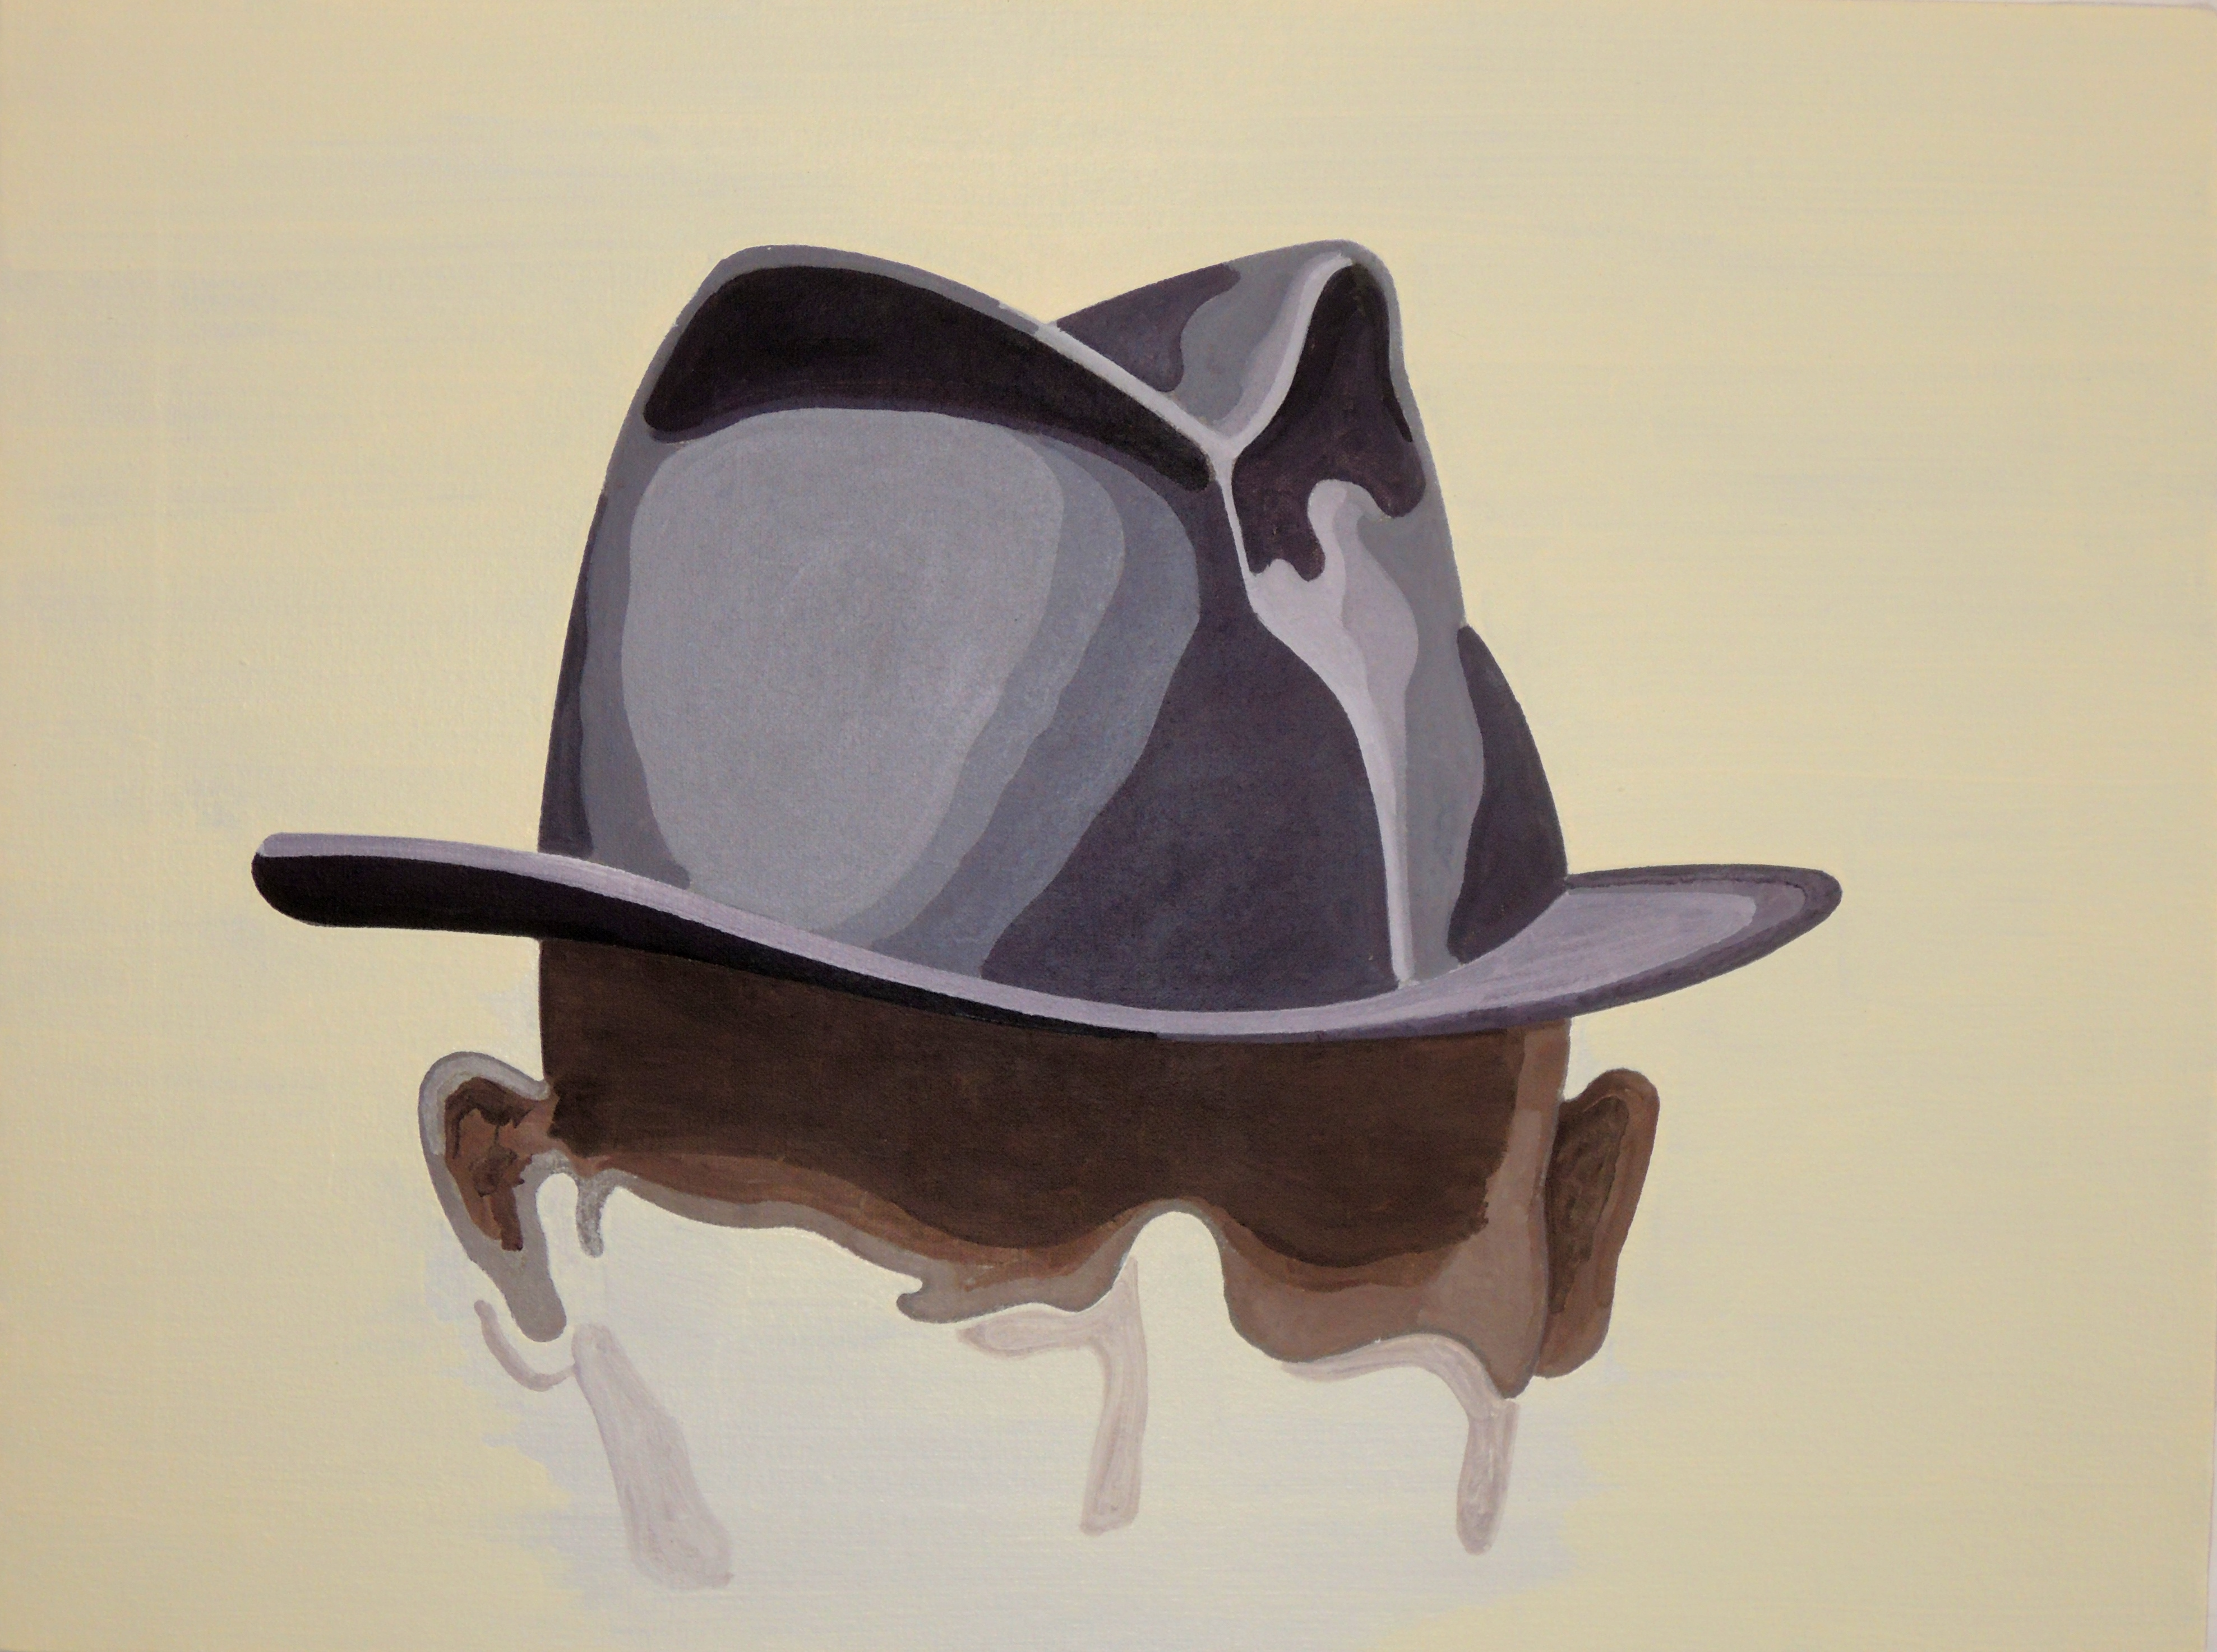 Kafka's Hat, oil on canvas, 45 x 60 cm, 2016